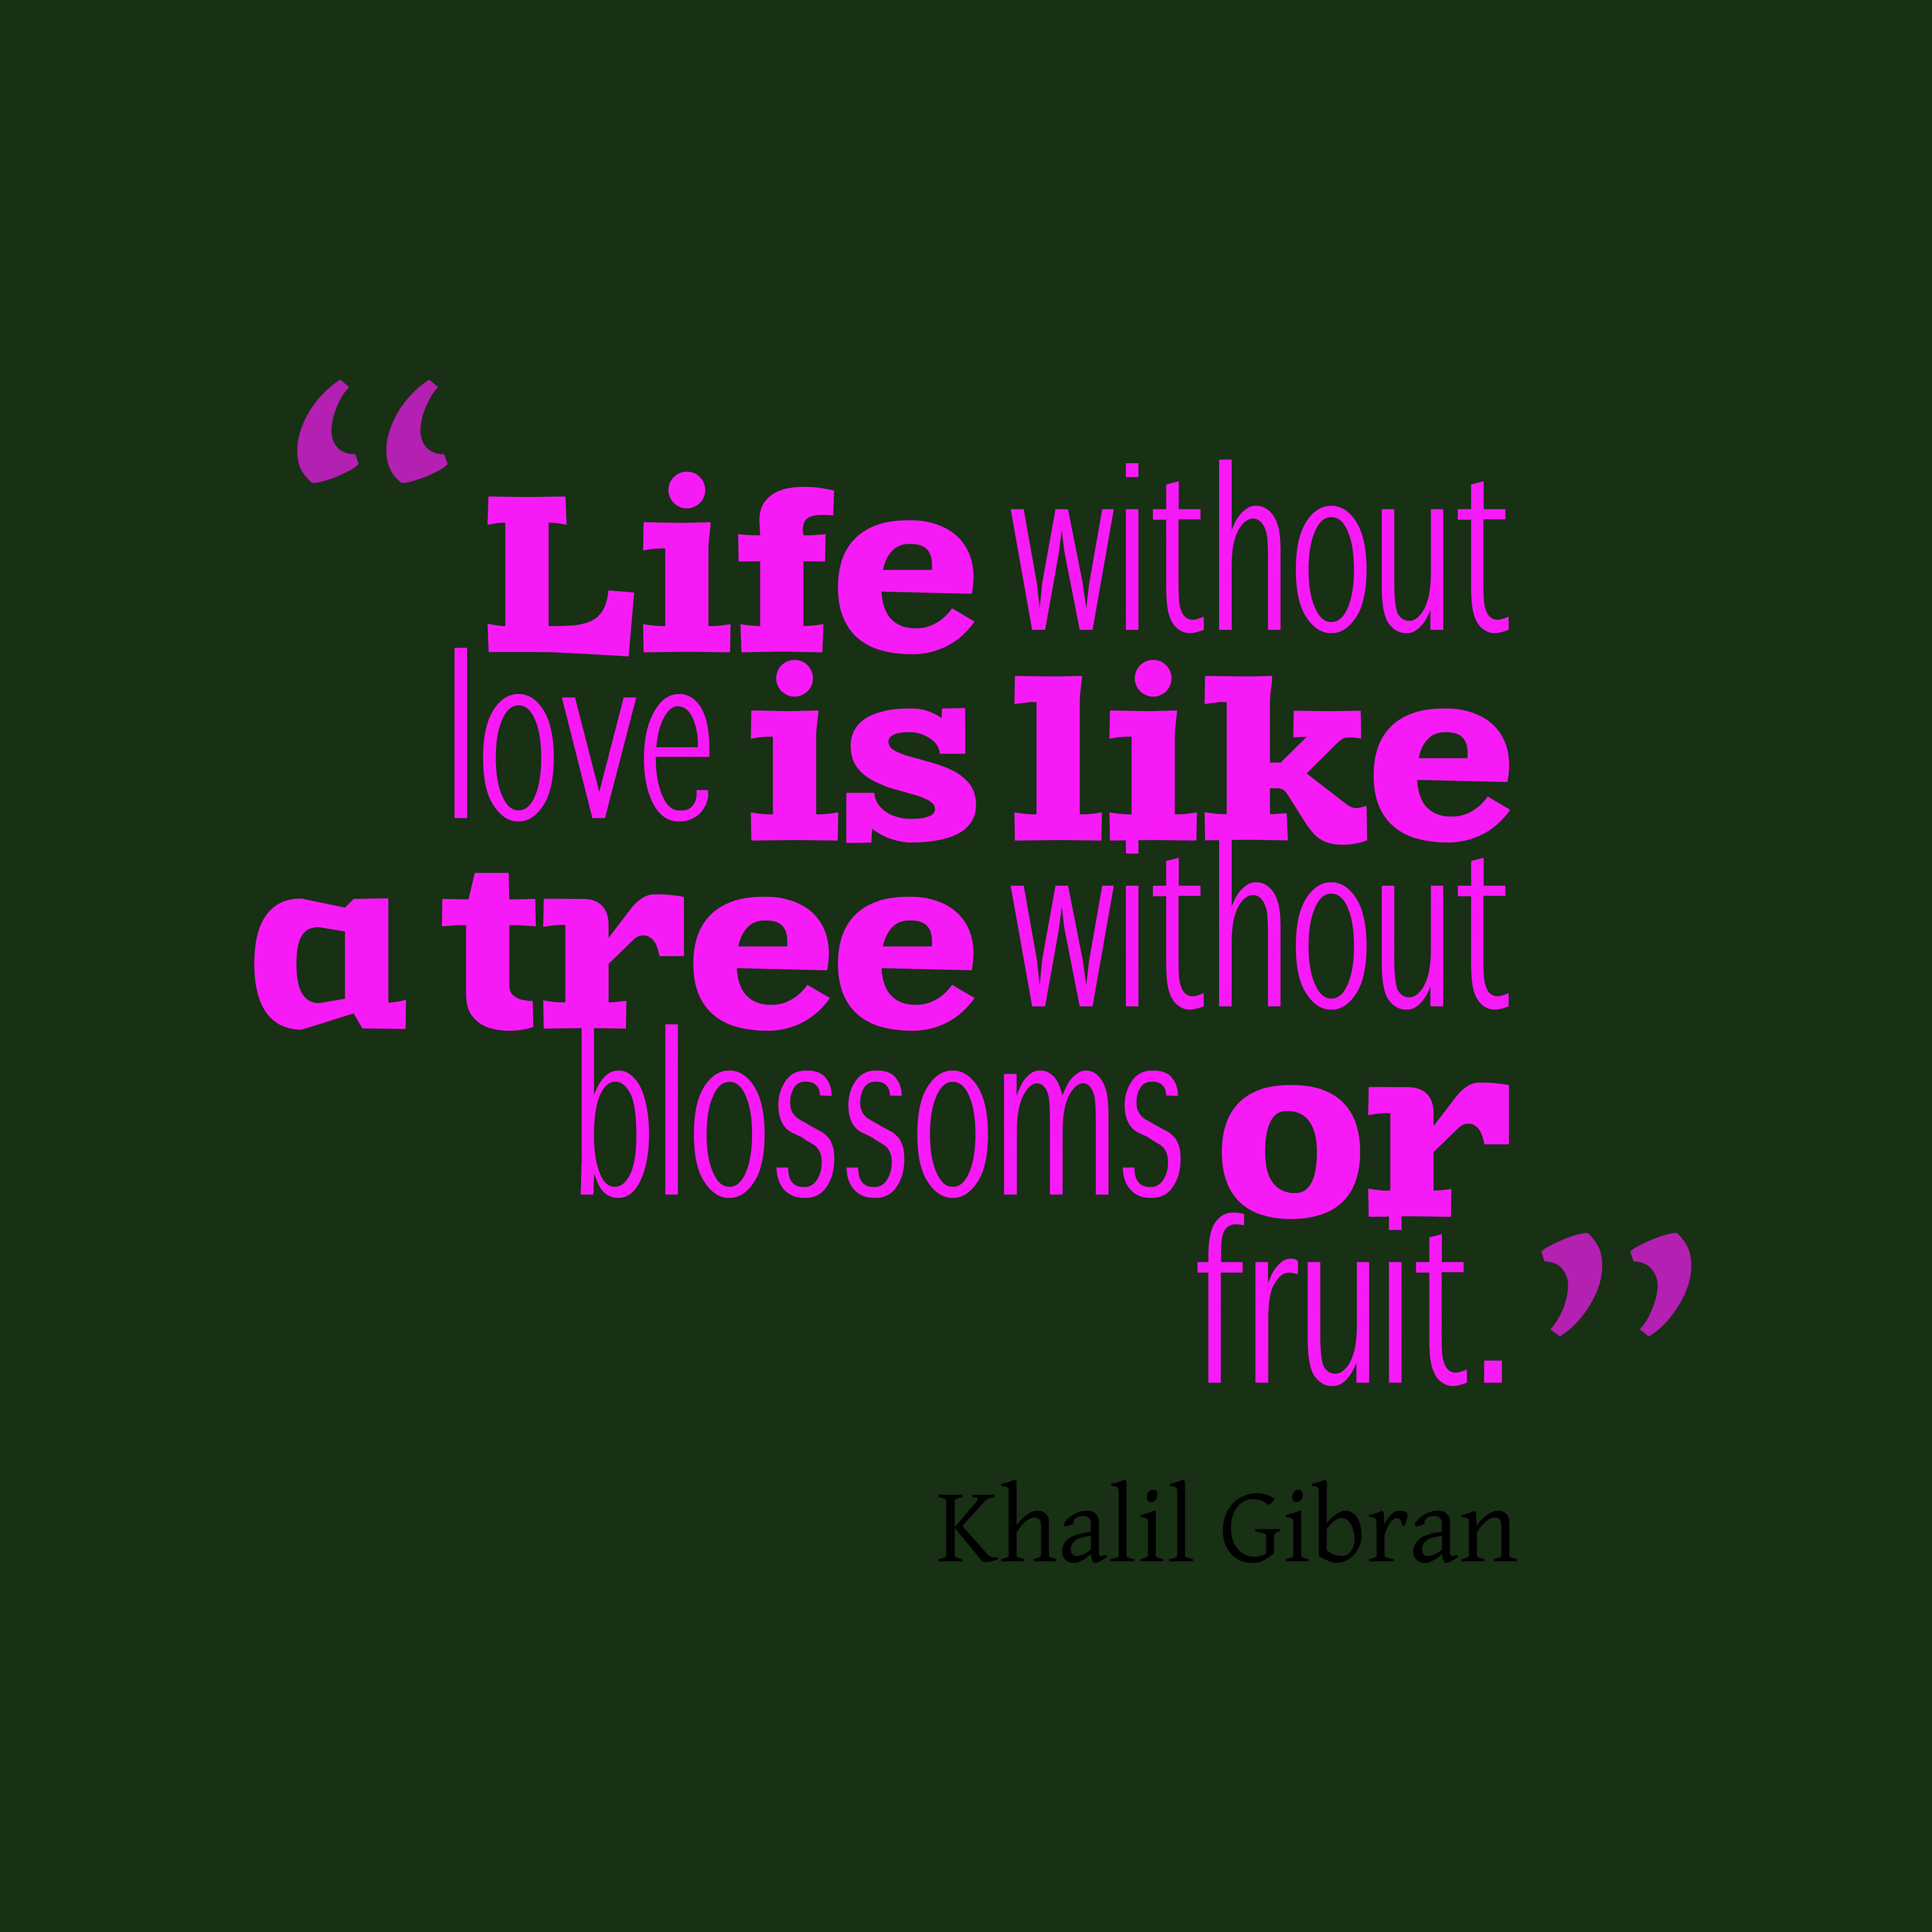 hi-res image of Life  23with 23out  23 23 23love is like a tree    Khalil Gibran Quotes Life